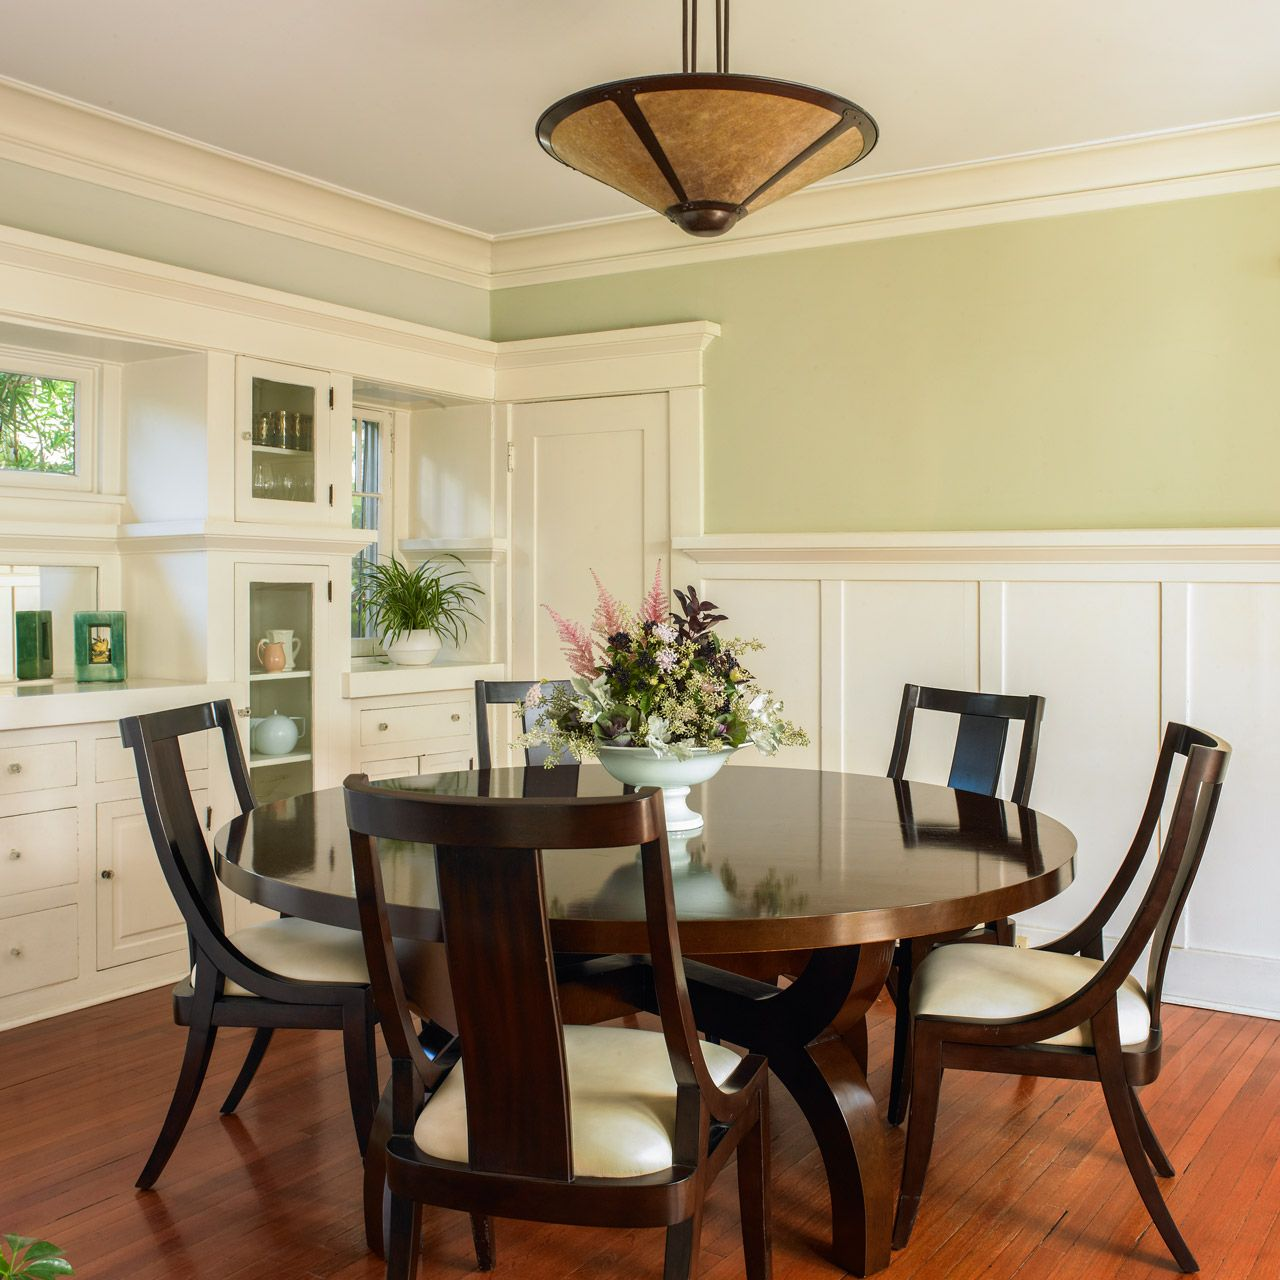 Dining Room Paint Schemes: Dunn-Edwards Paints Paint Colors: Walls: Huntington Garden